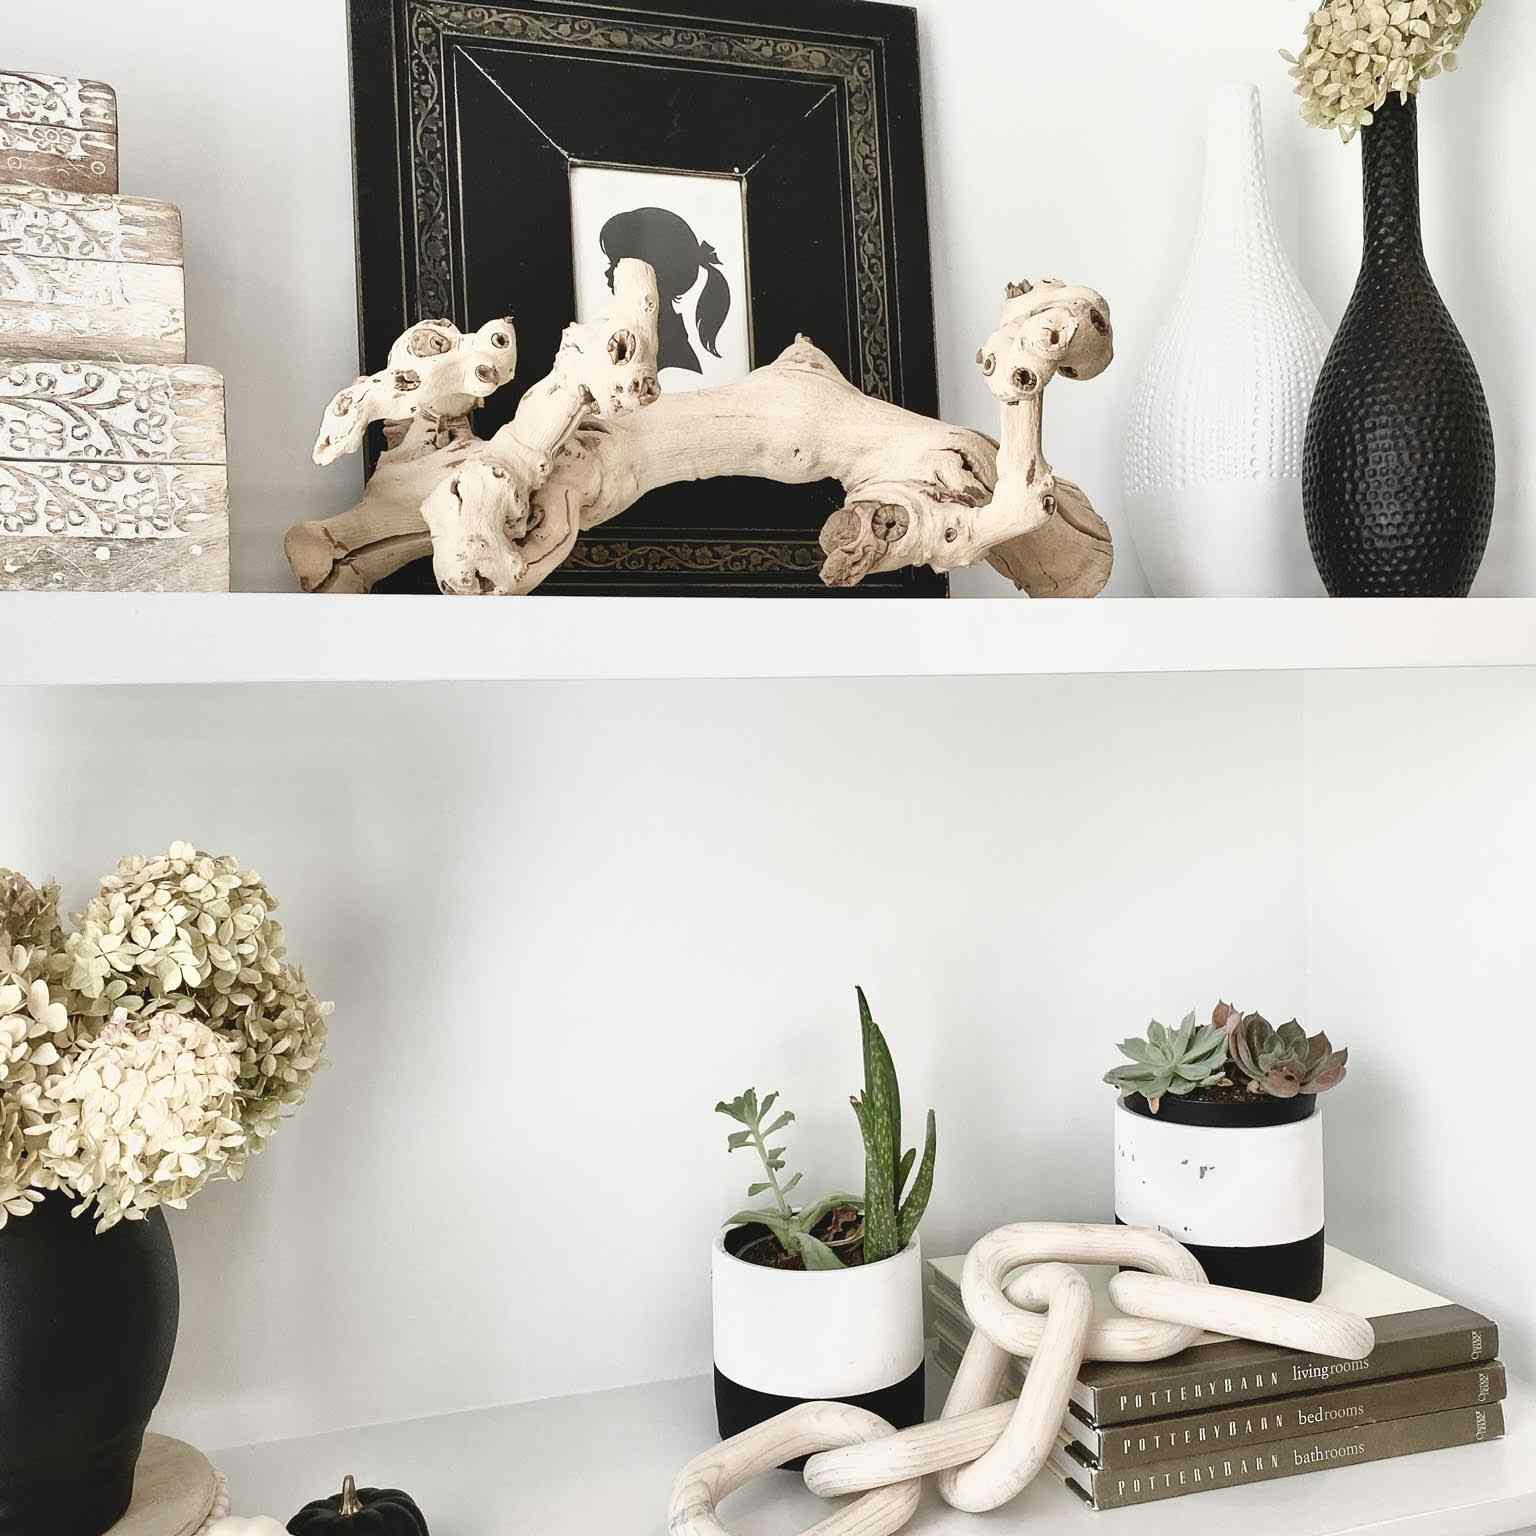 White shelving with driftwood decor.